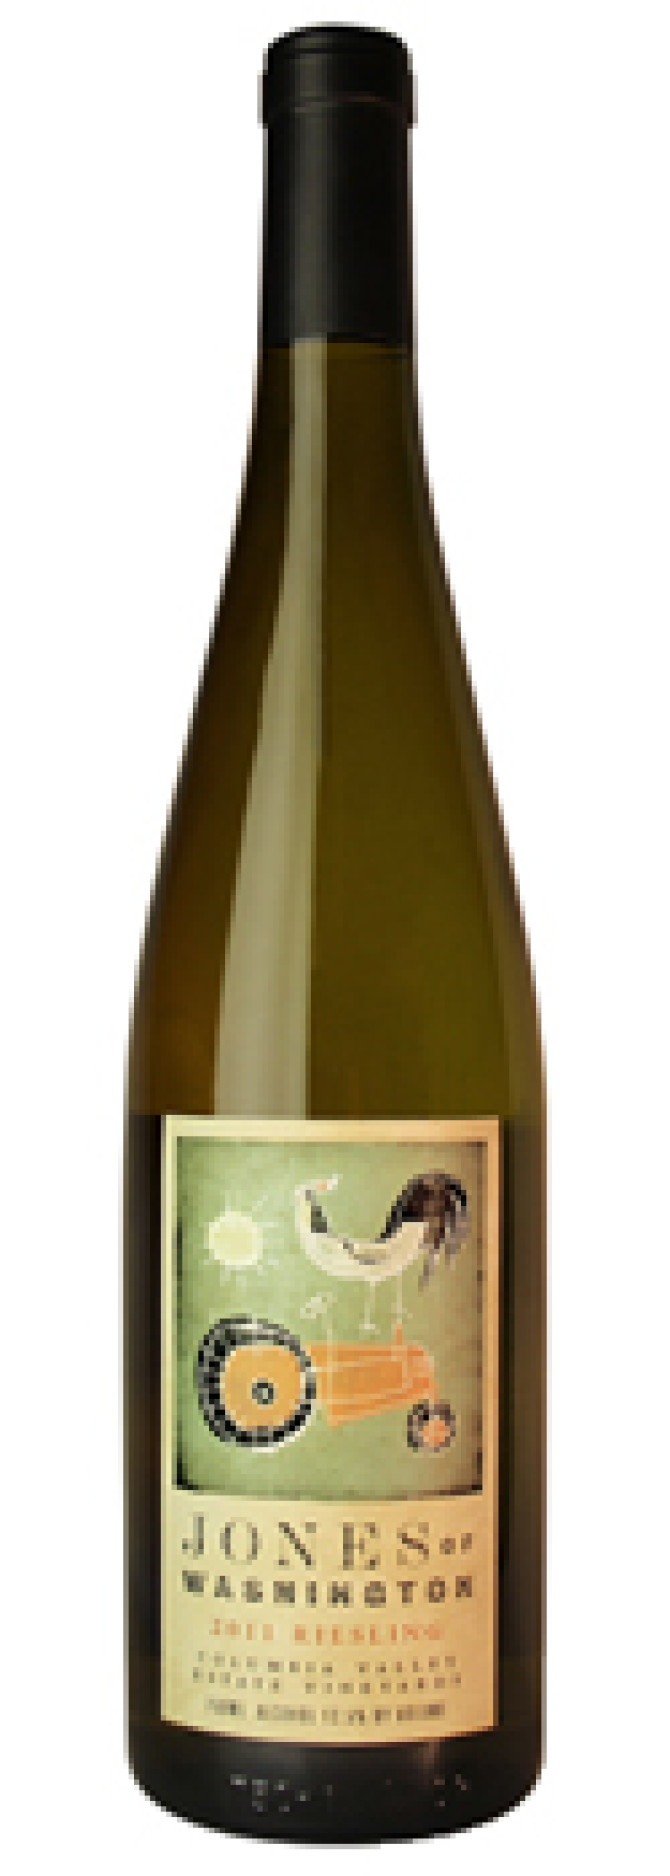 jones-of-washington-riesling